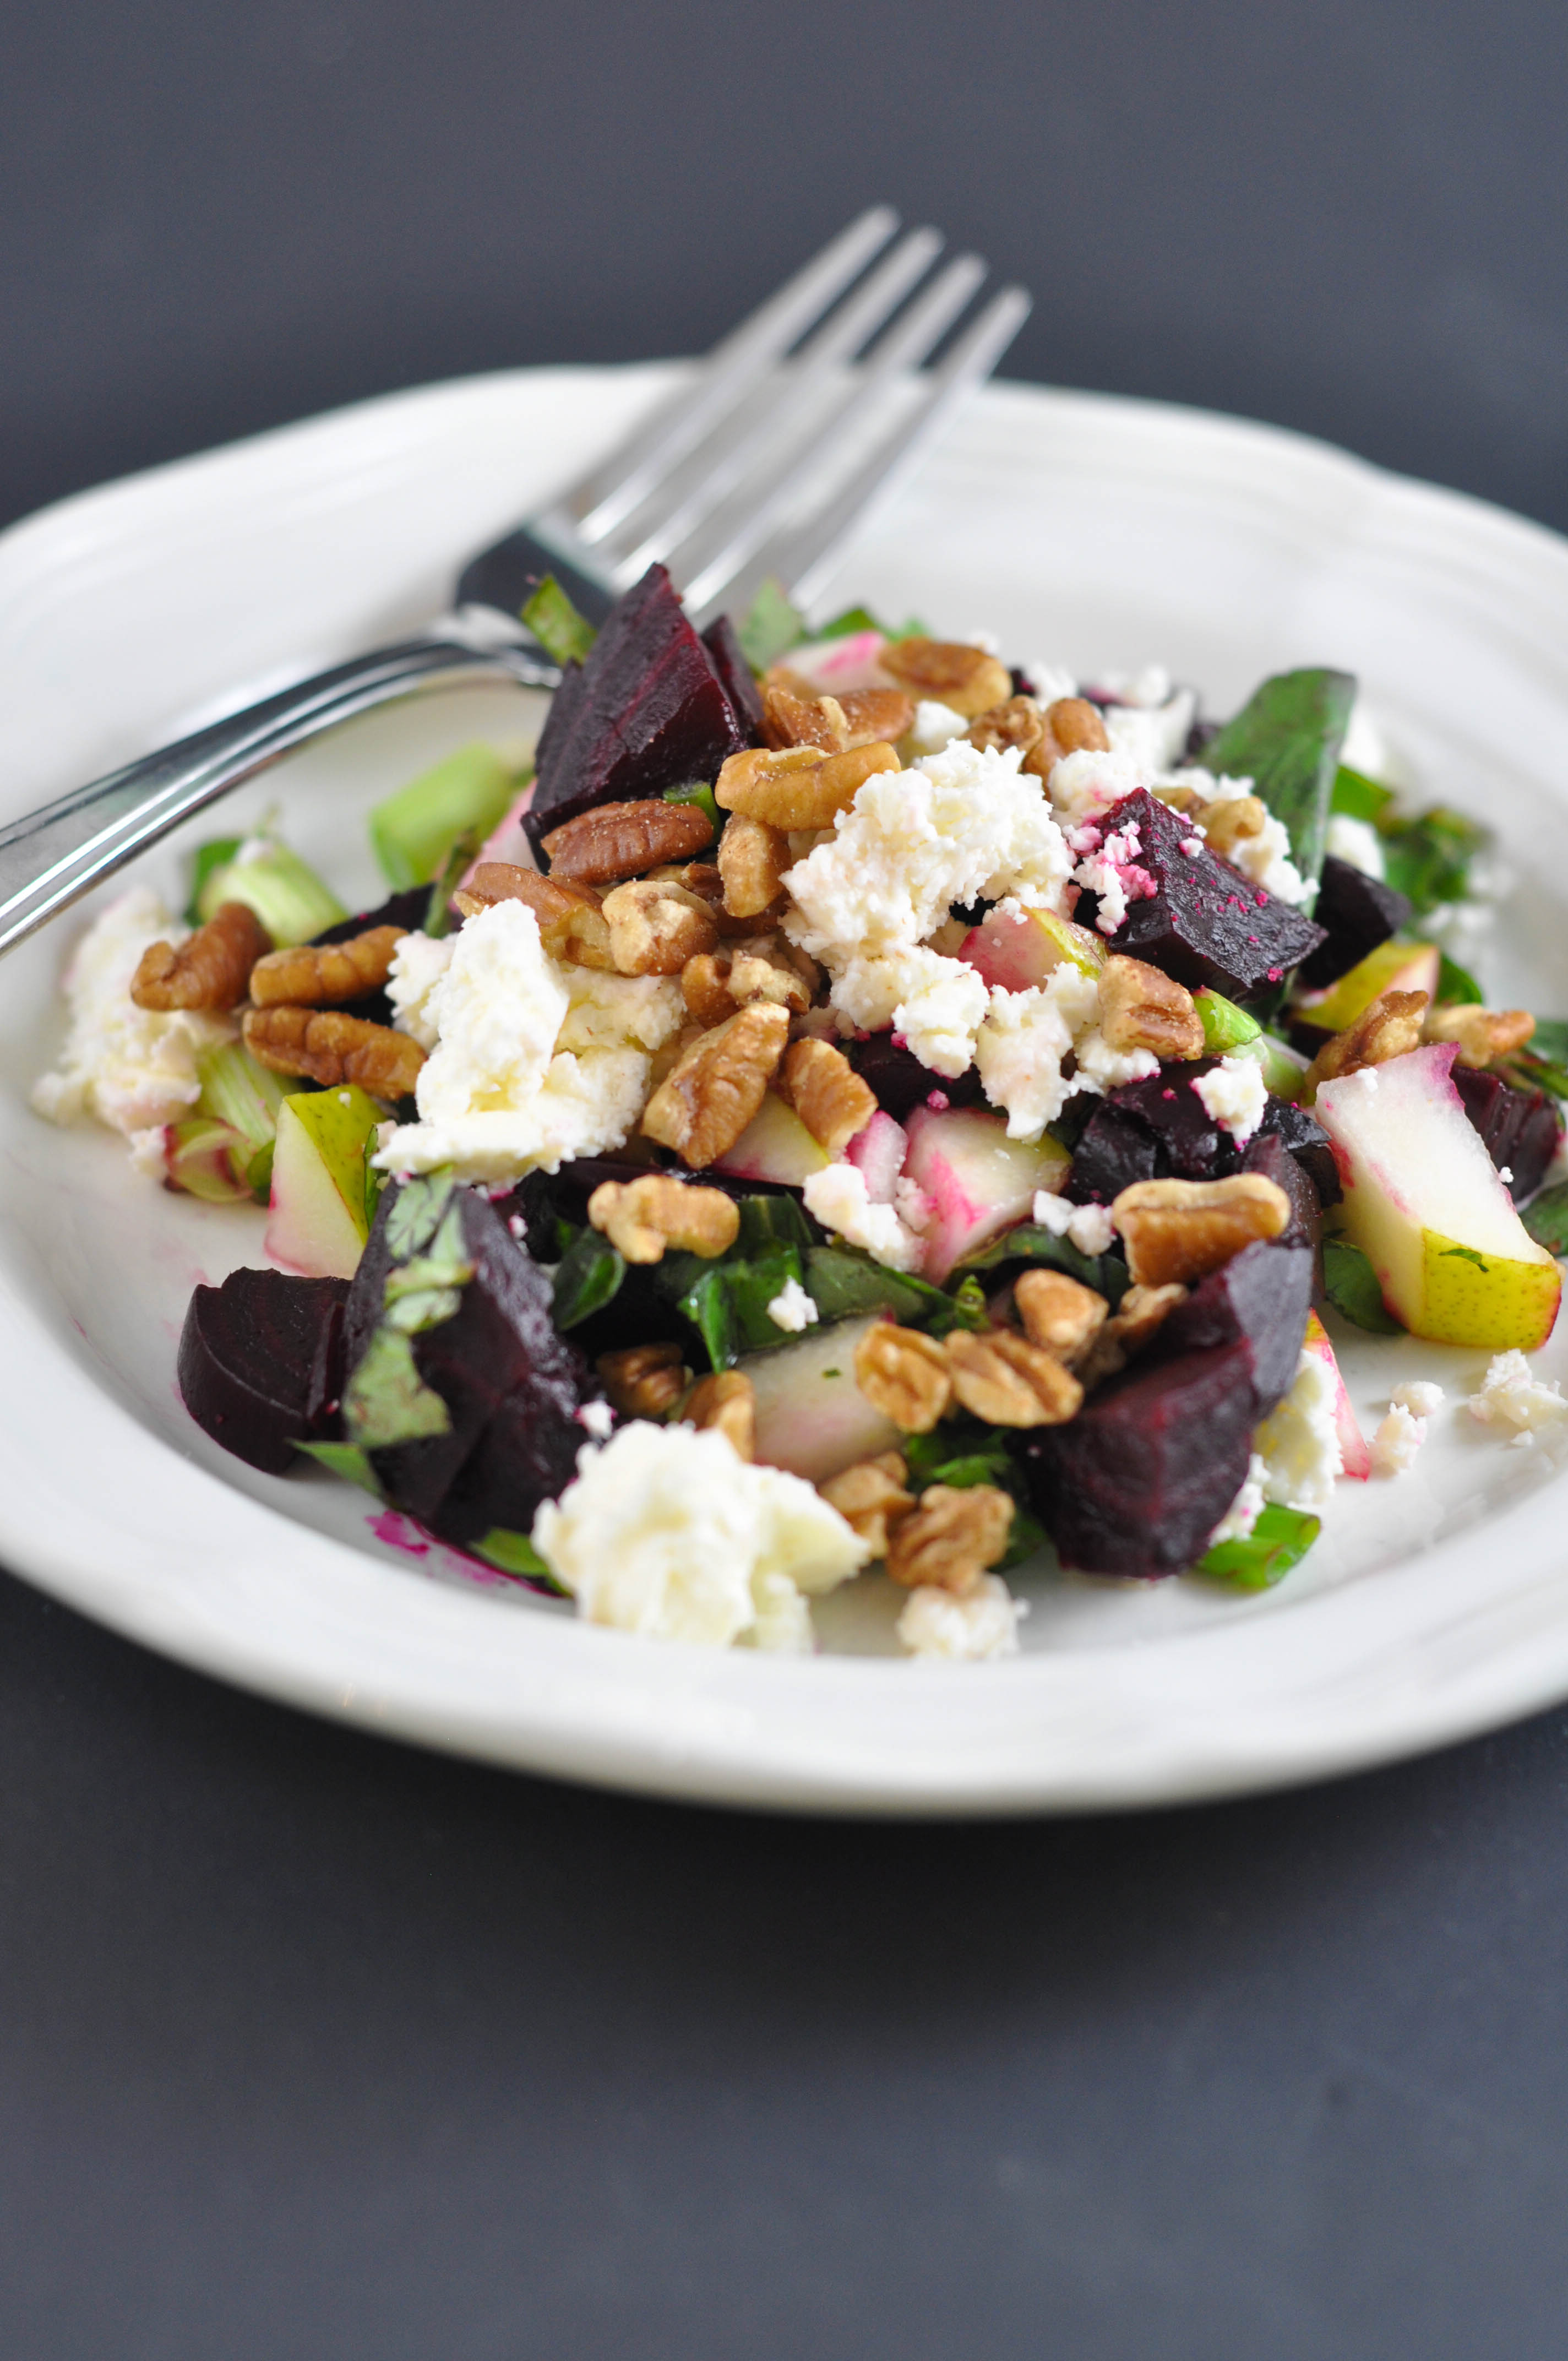 Beet, Pecan and Pear Salad (aka Heat's Beets) - Suburble